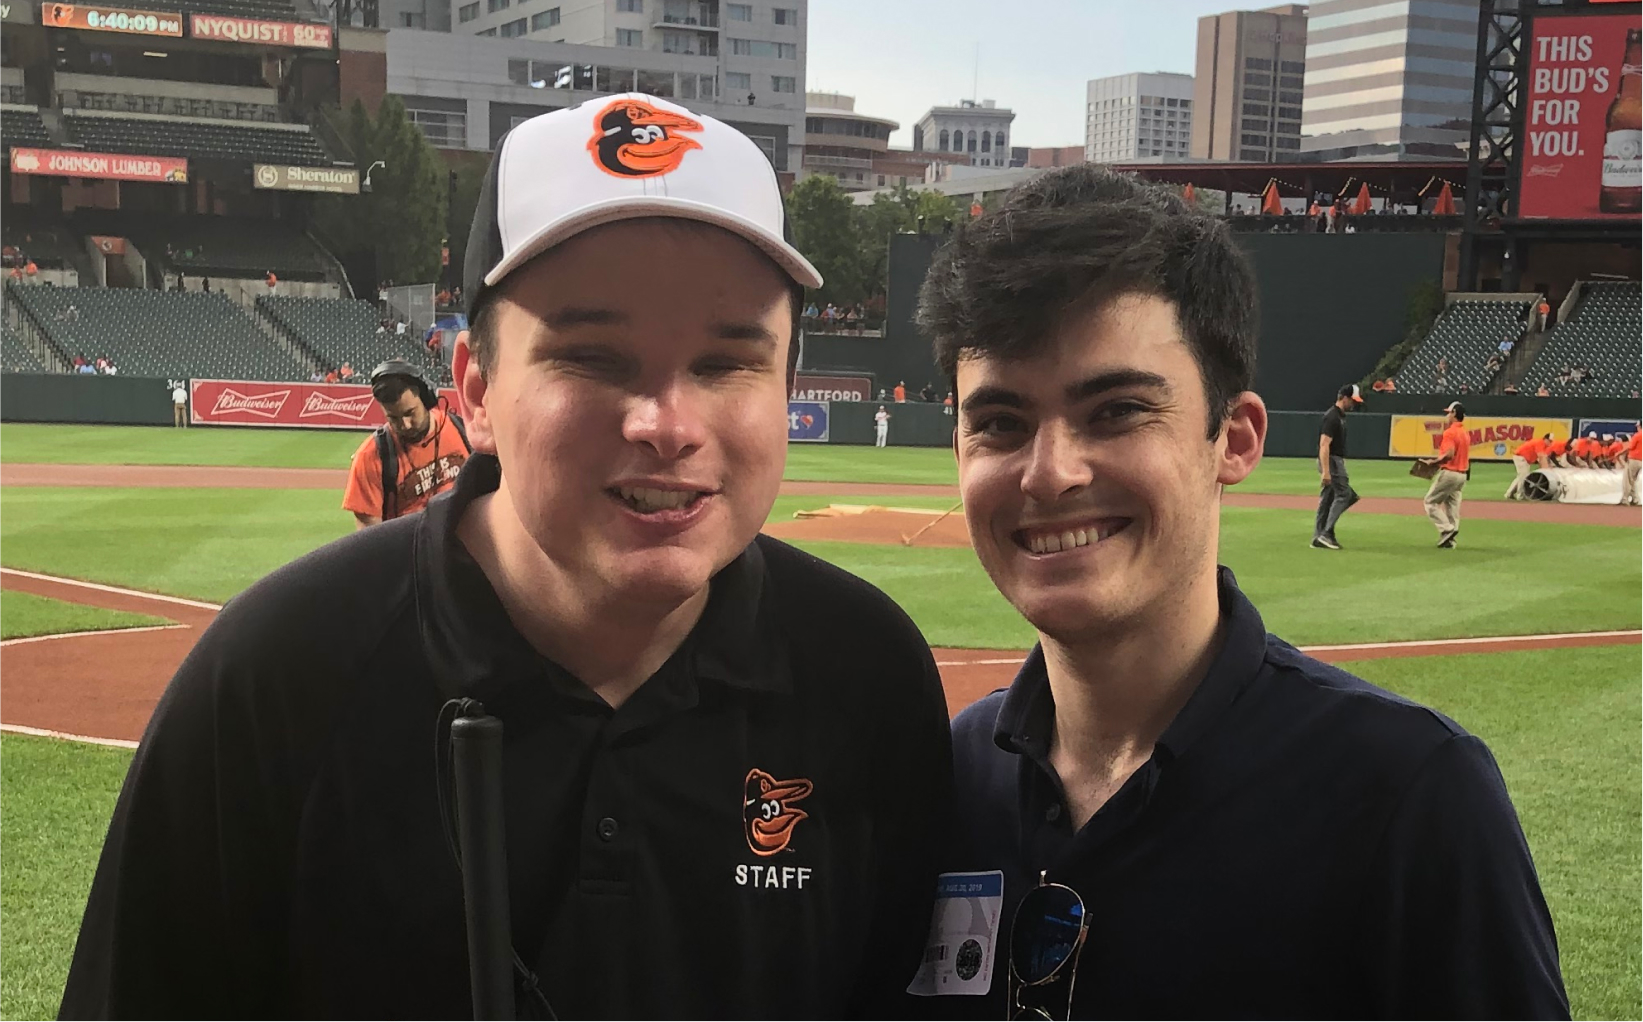 Bryce posing with a friend on a baseball field. Bryce is wearing a cap and a t-shirt with the Baltimore Oriole logo.